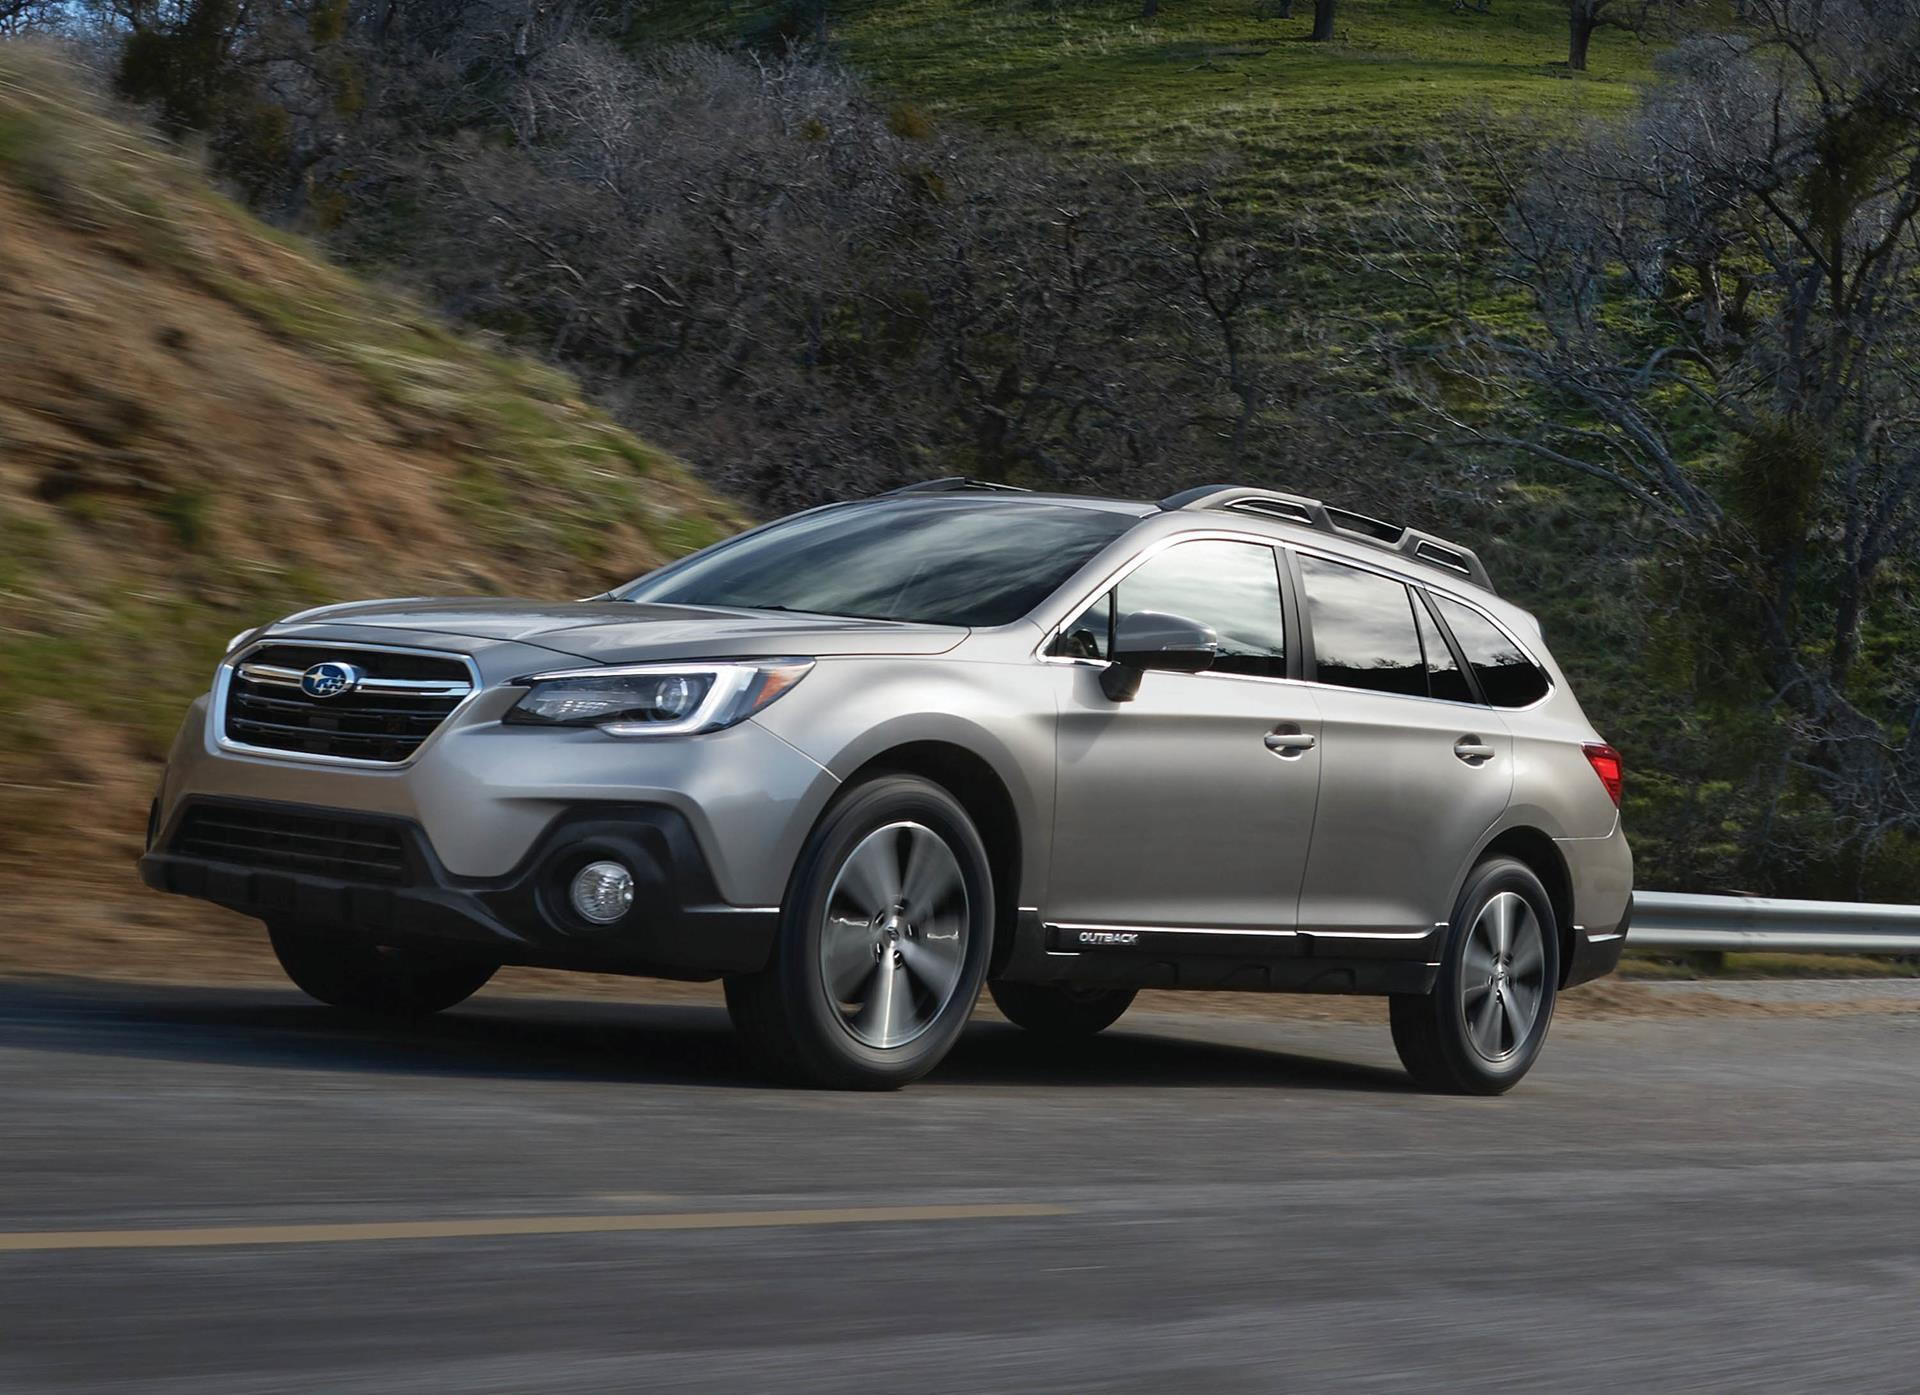 2018 Subaru Outback Technical and Mechanical Specifications